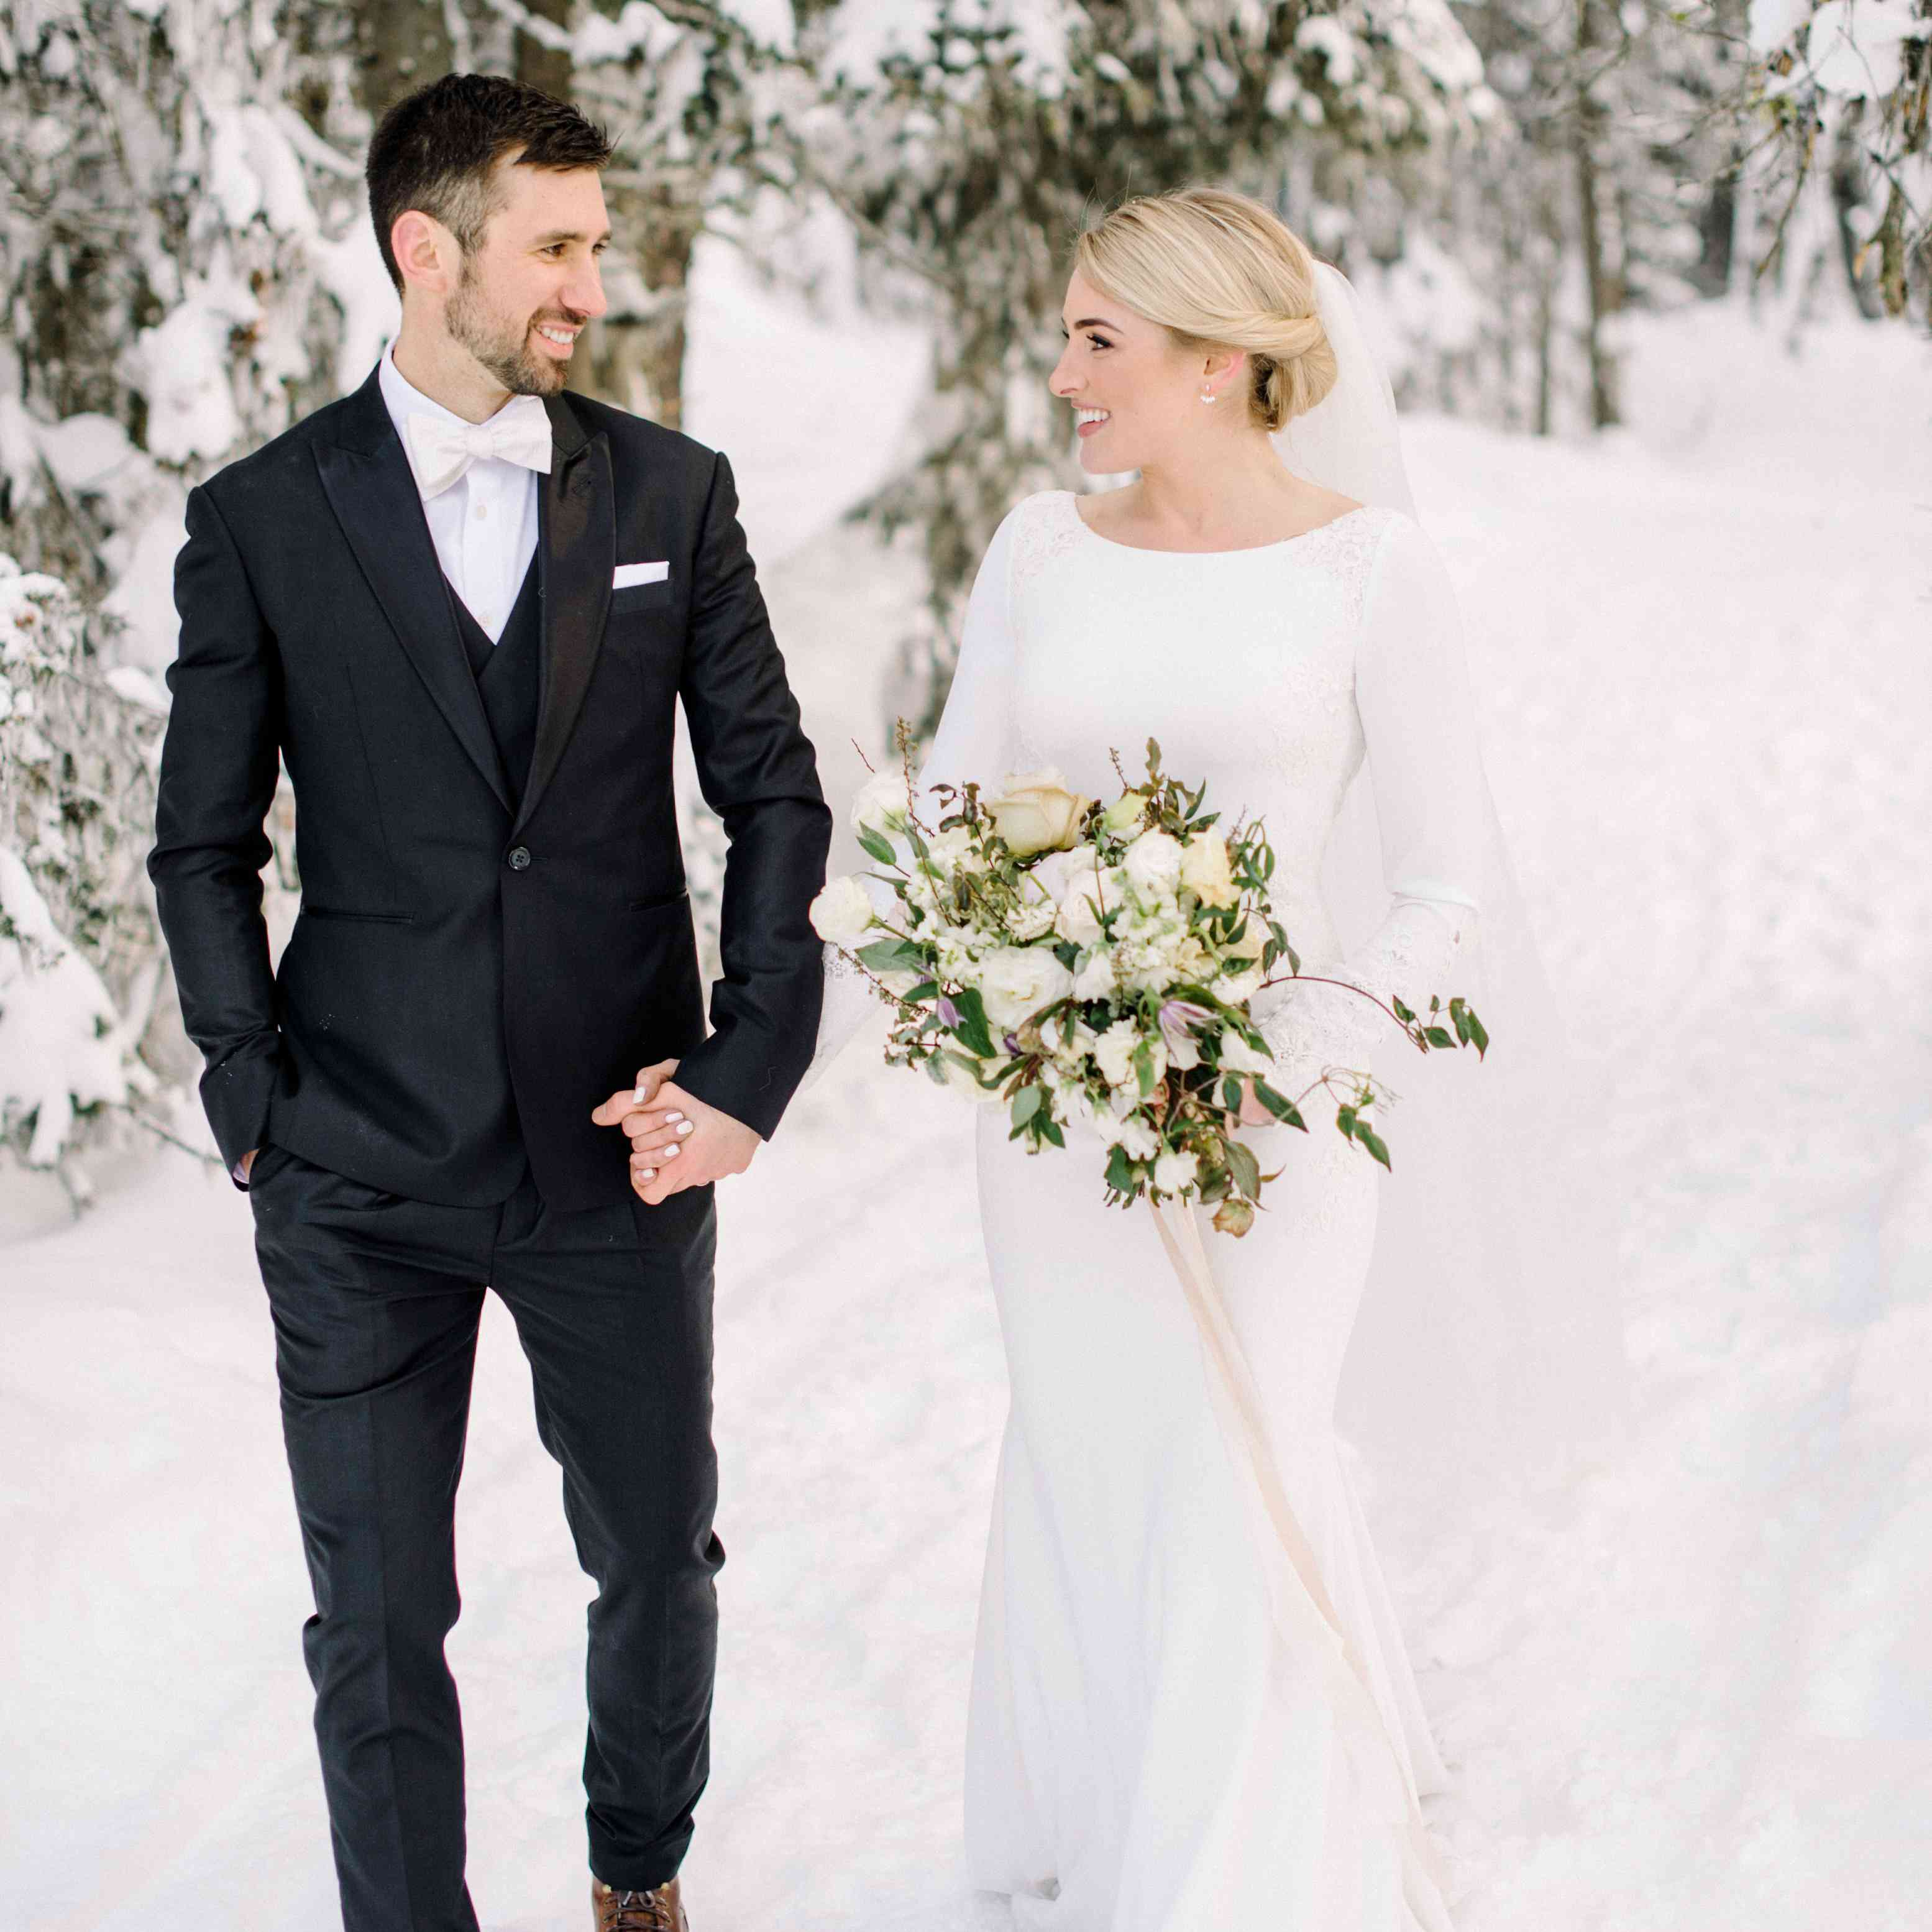 bride and groom snowy mountain background